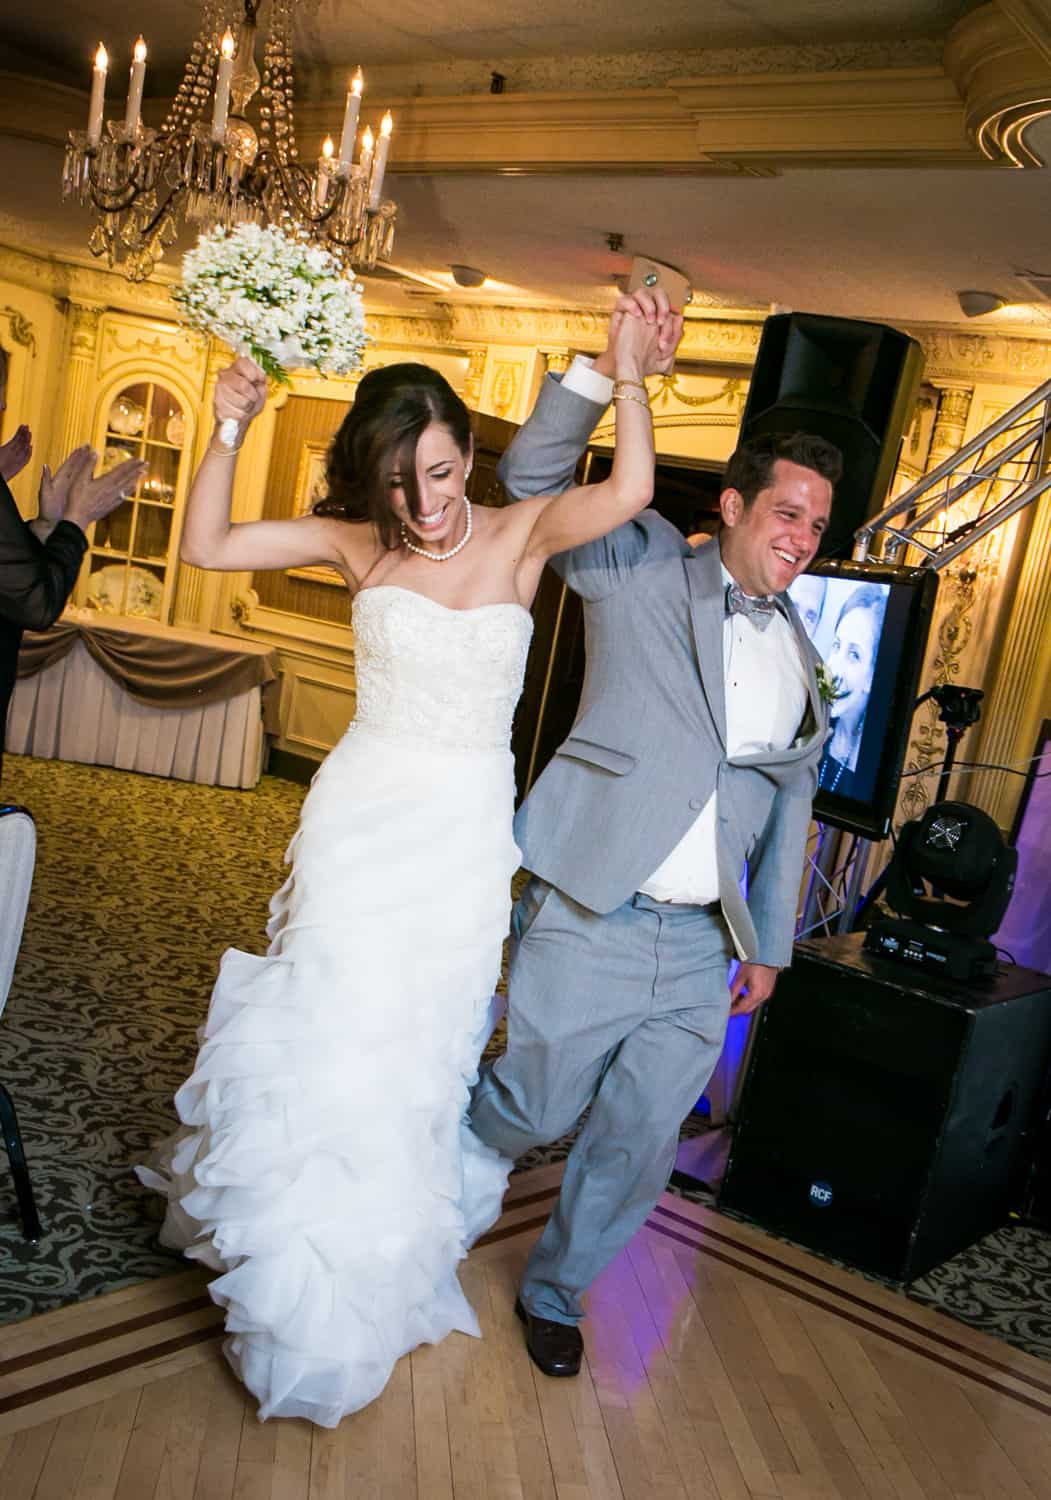 Bride and groom dancing as they enter reception